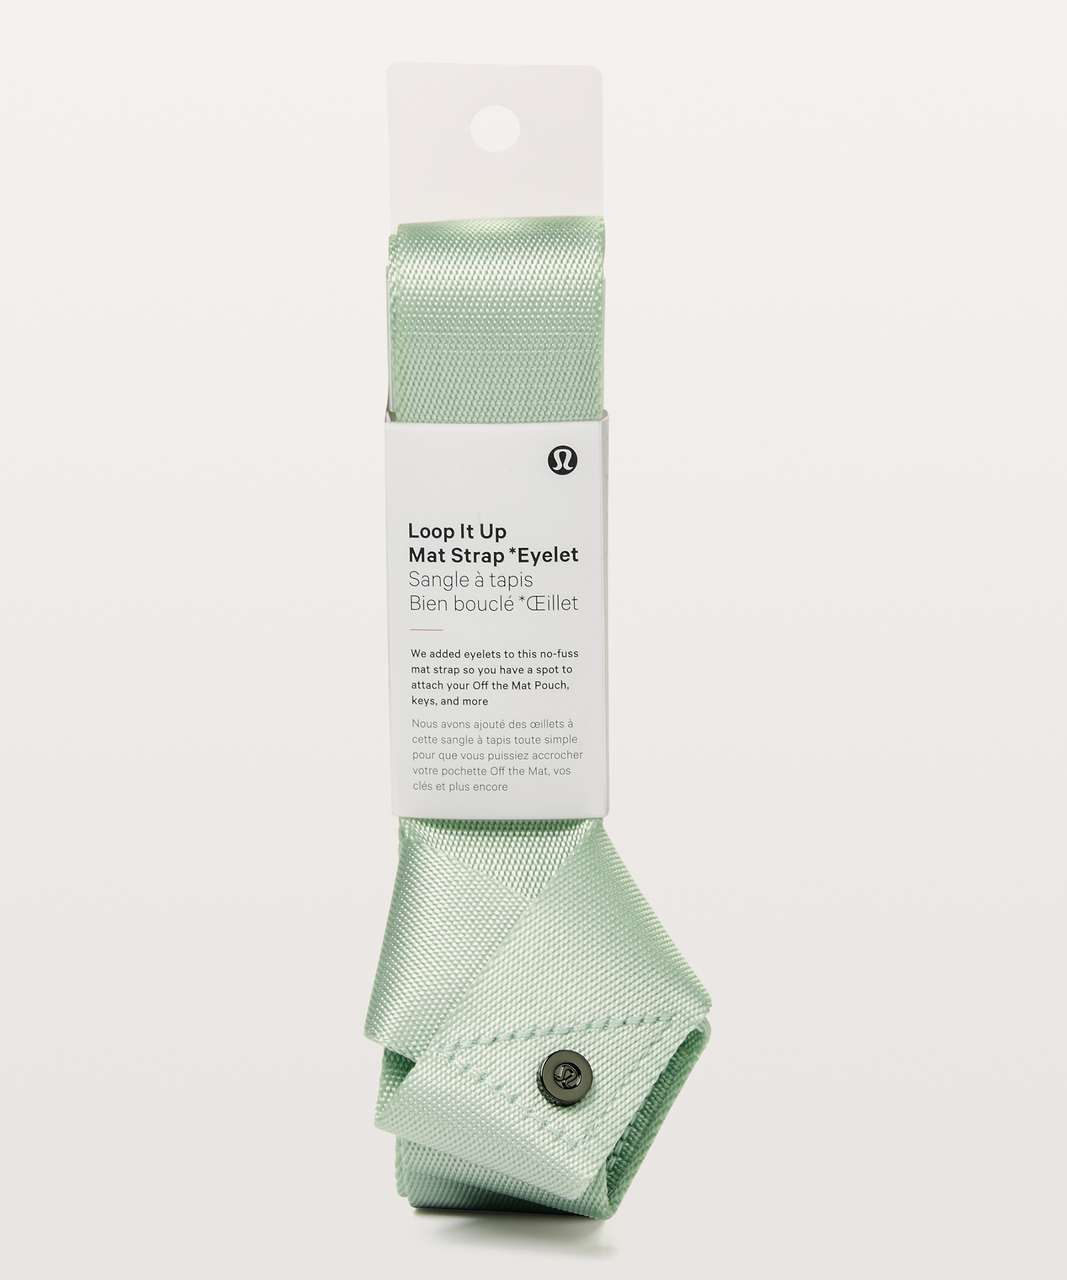 Lululemon Loop It Up Mat Strap *Eyelet - Sea Breeze